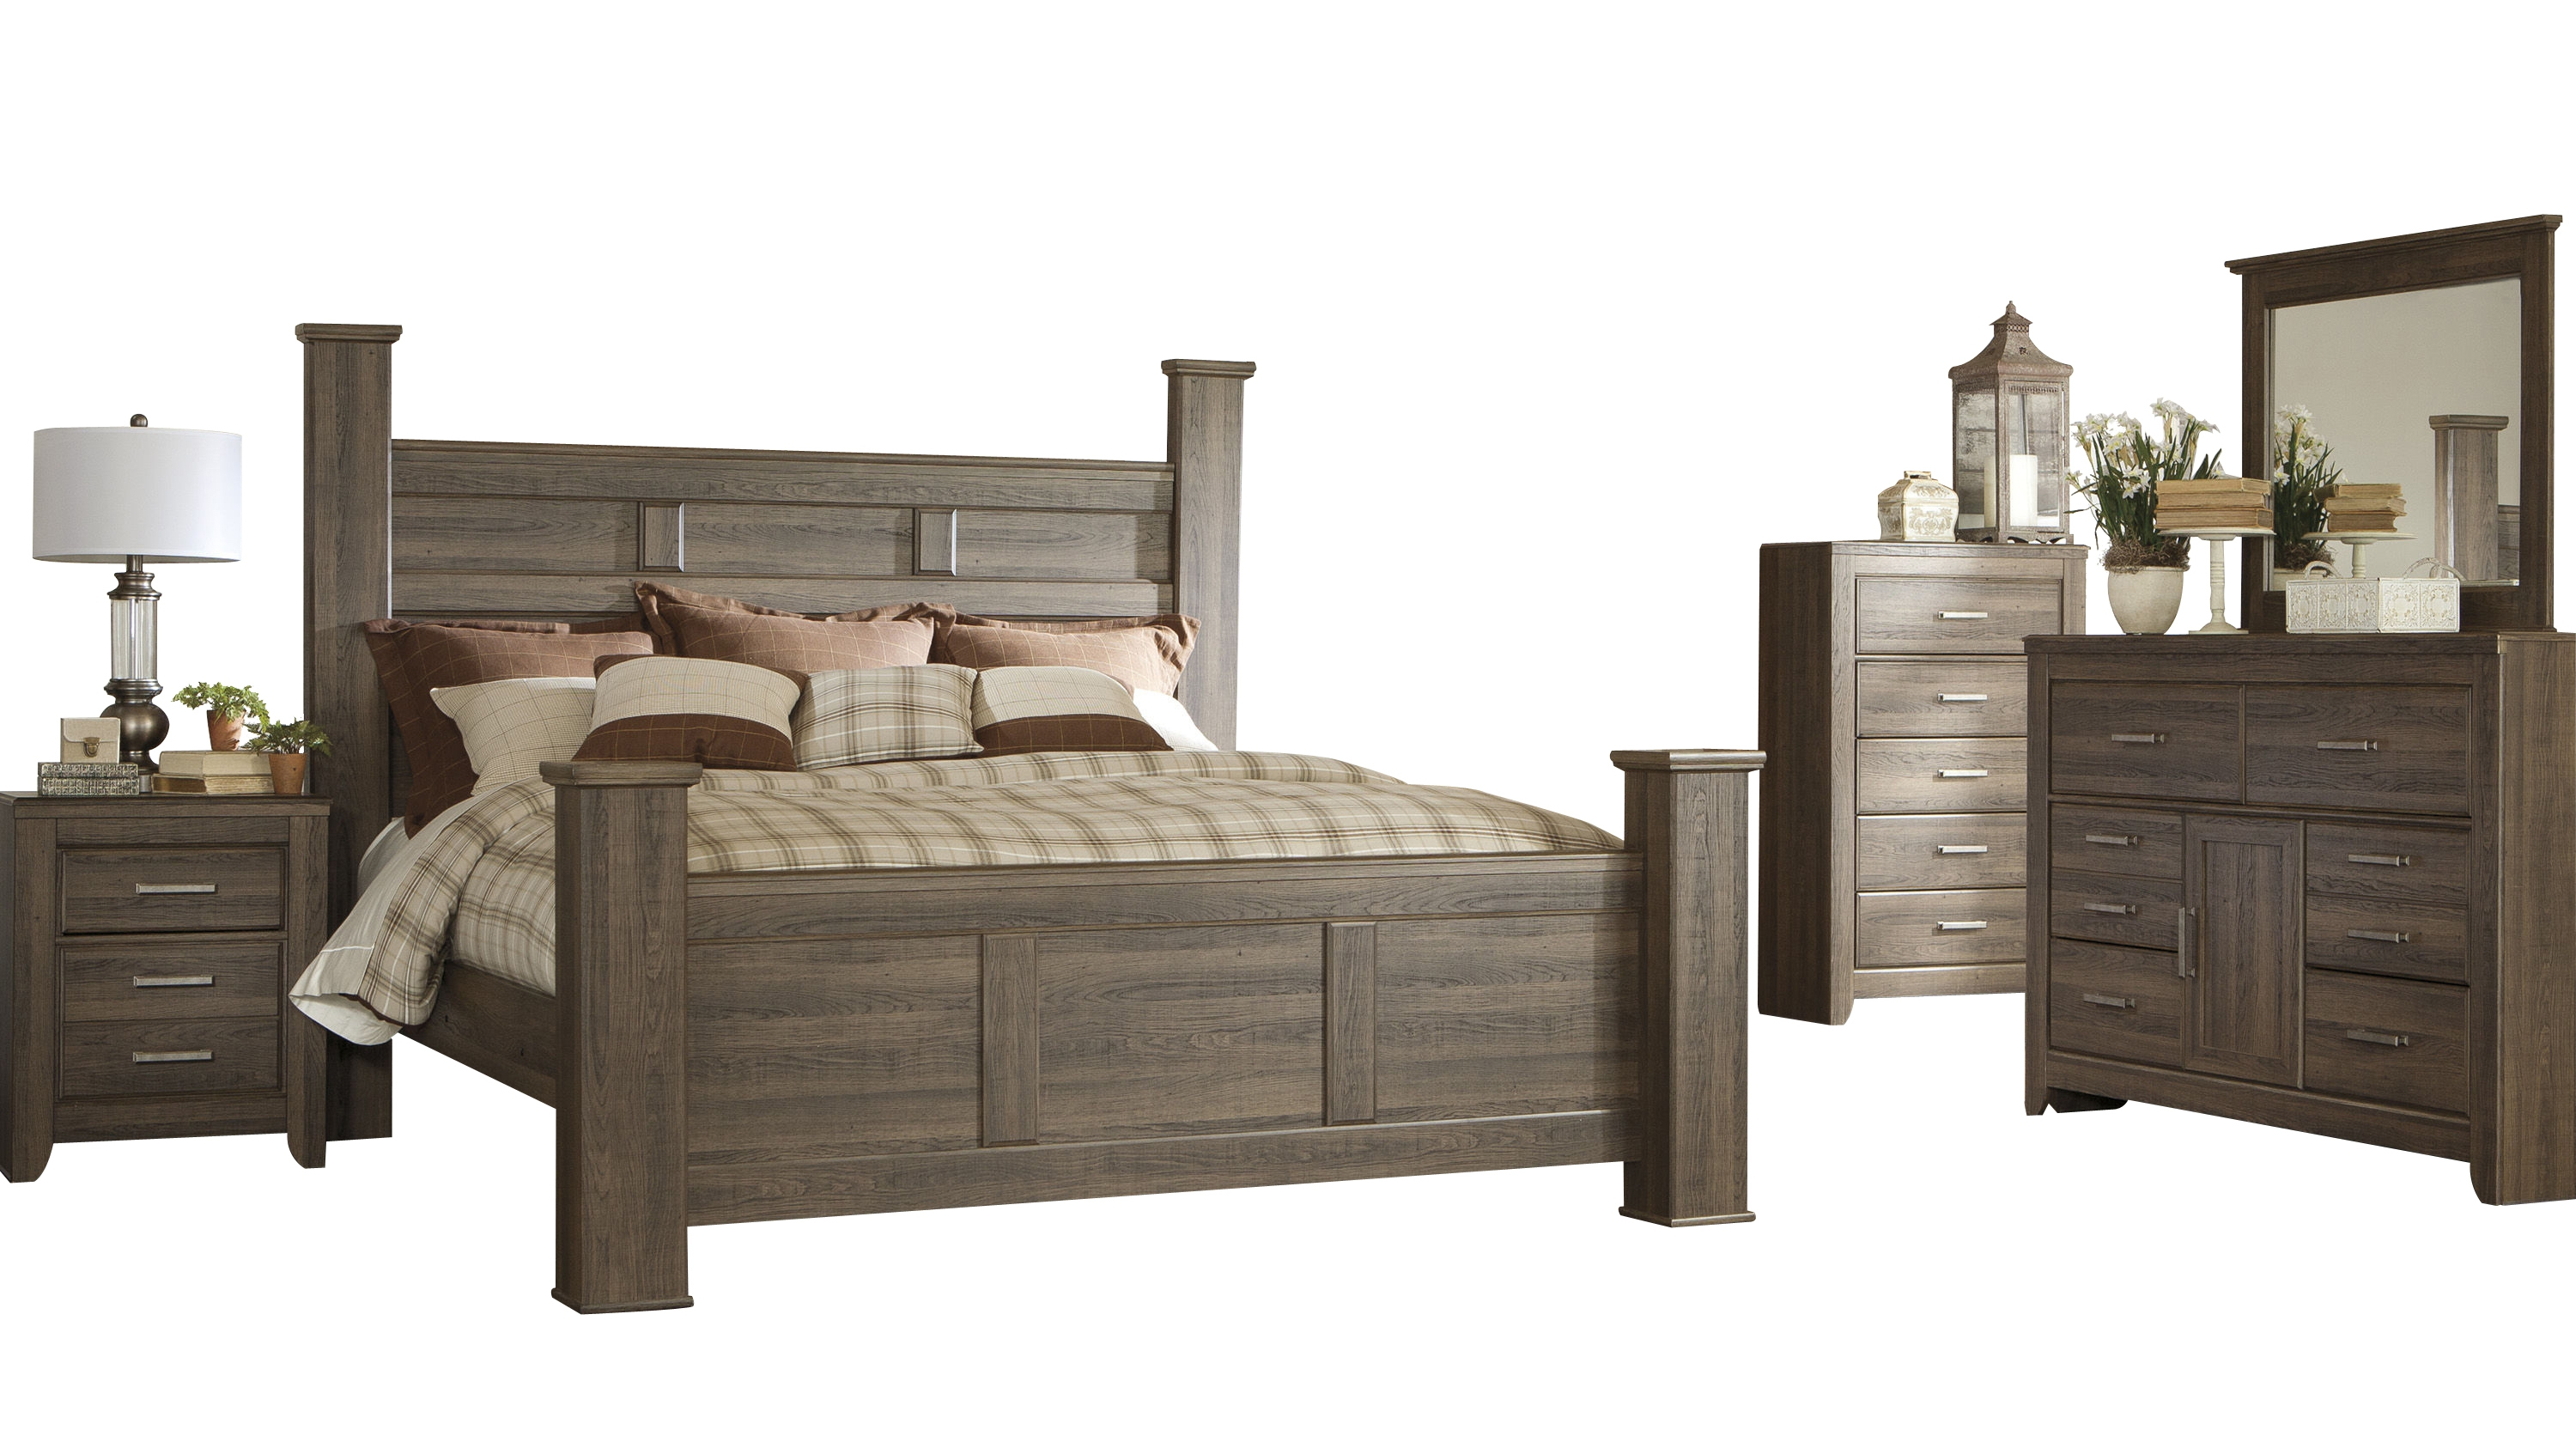 Ashley Furniture Juararo 2pc Bedroom Set with King Poster Bed | The ...